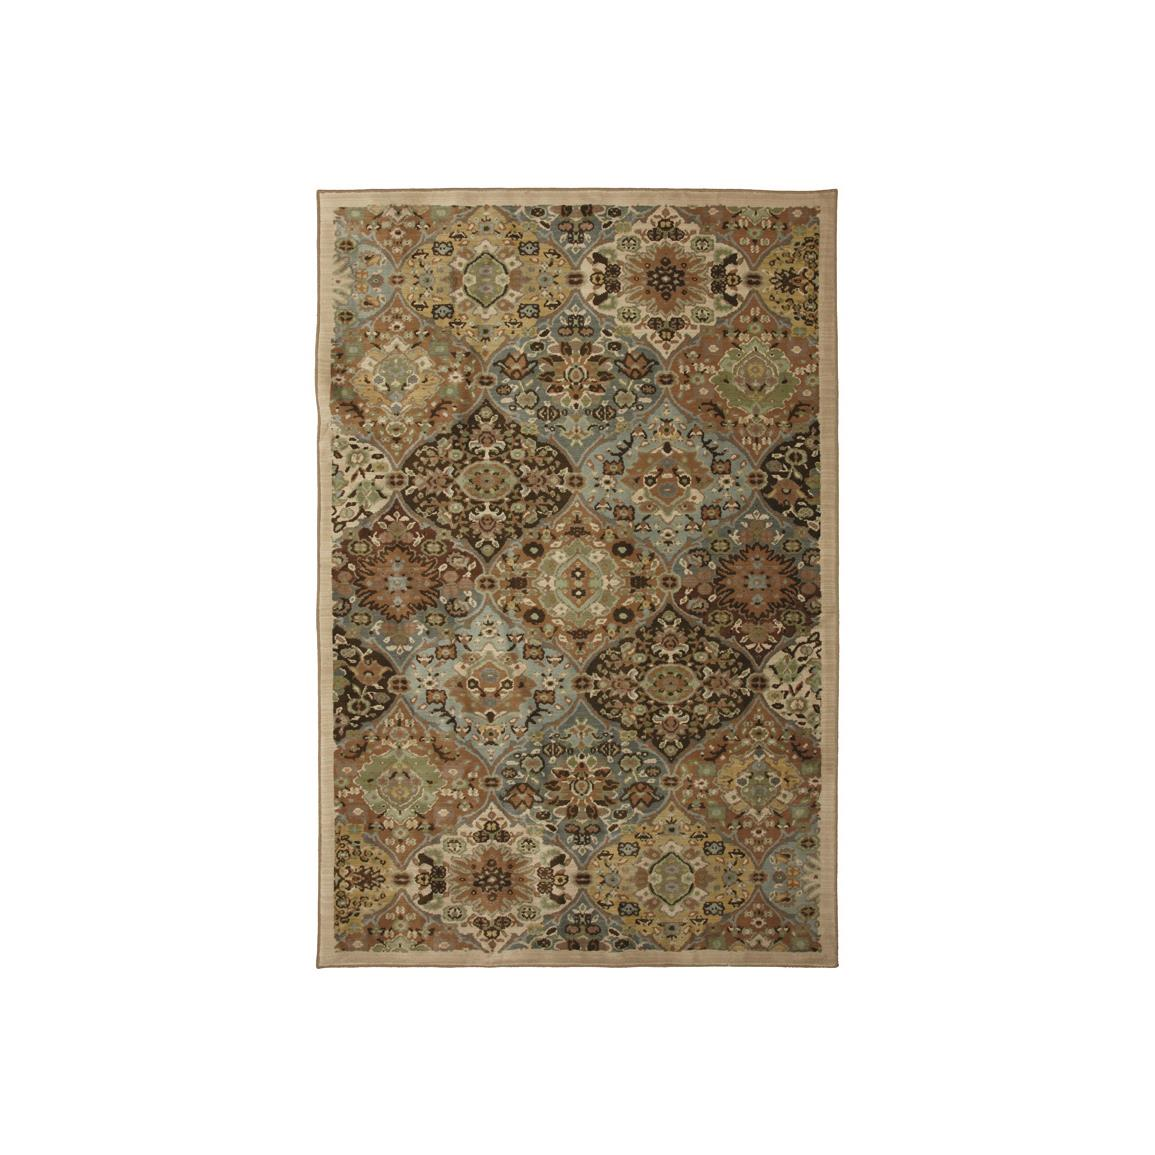 Kirman Coast 3 1/2 foot x 5 1/2 foot Area Rug